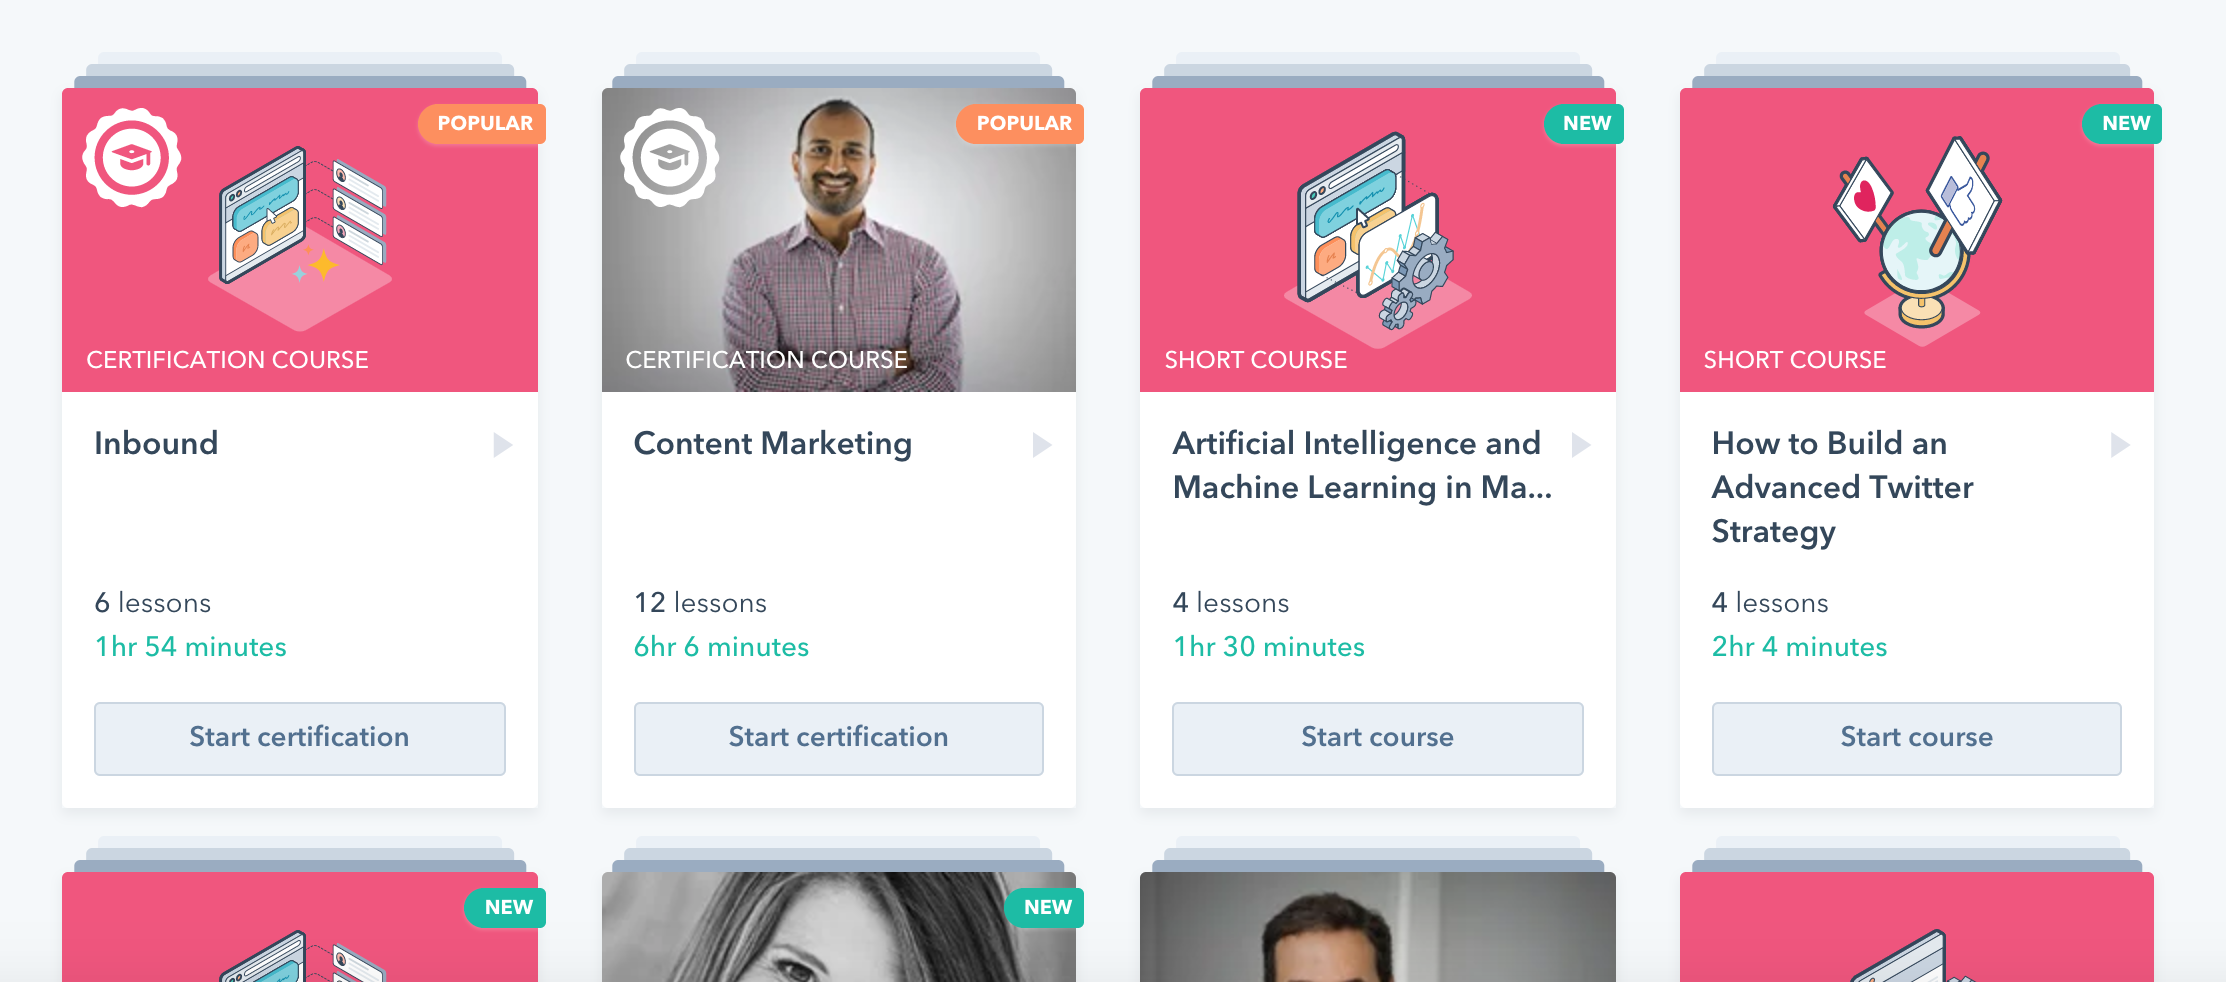 Hubspot marketing courses selection